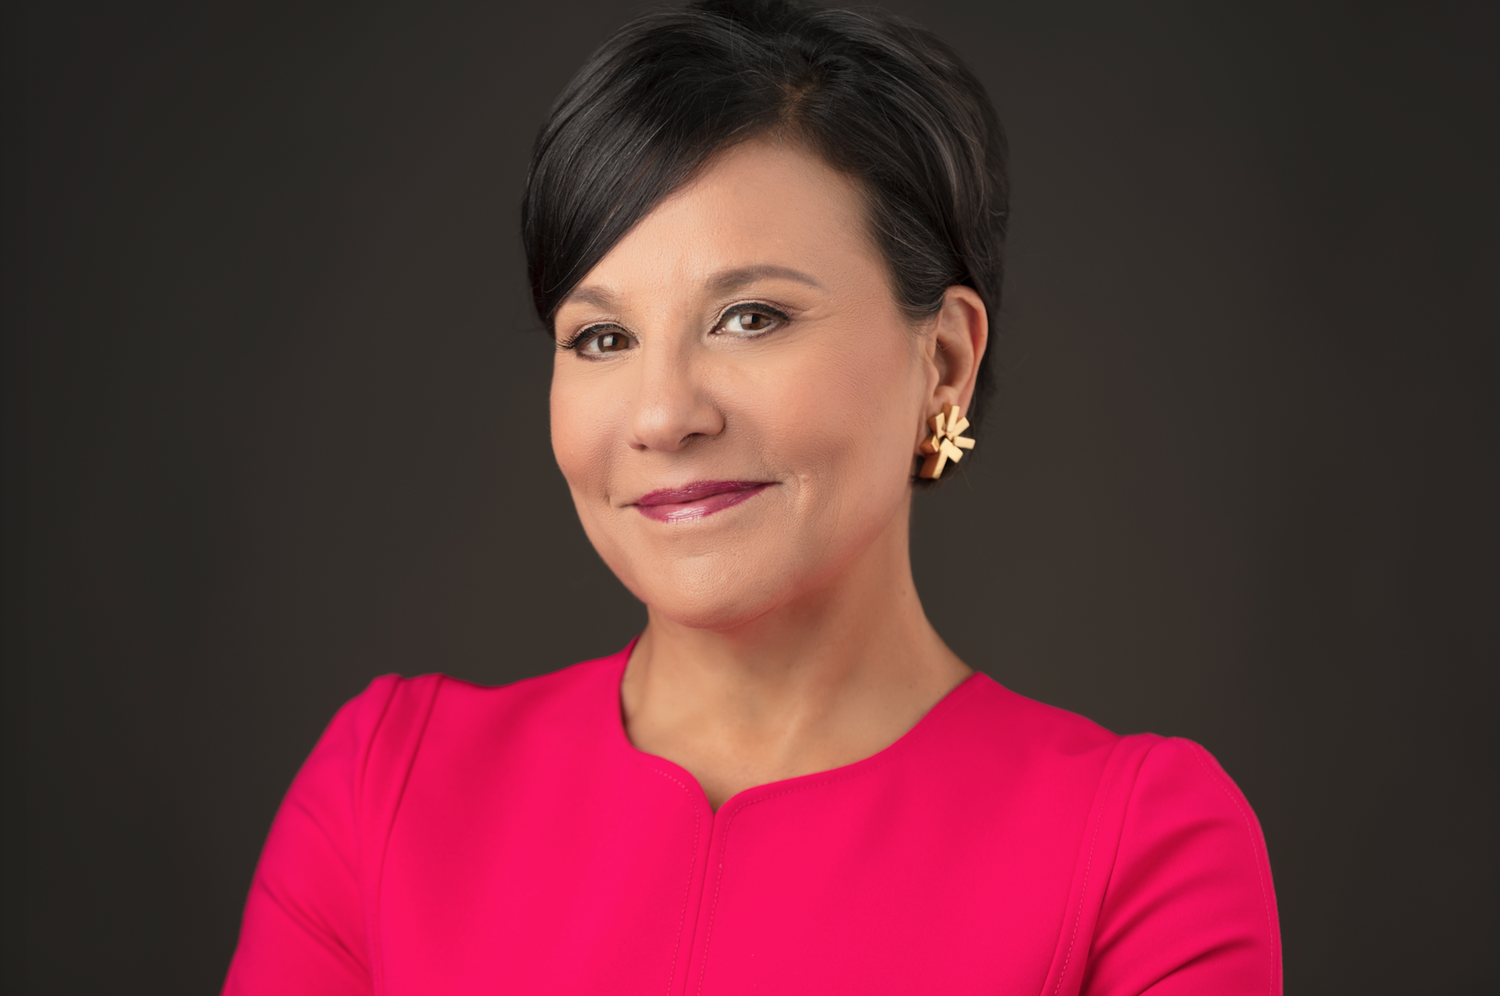 Former U.S. Secretary of Commerce and business leader Penny S. Pritzker '81 donated $100 million to the Economics Department to support the construction of a new department building.